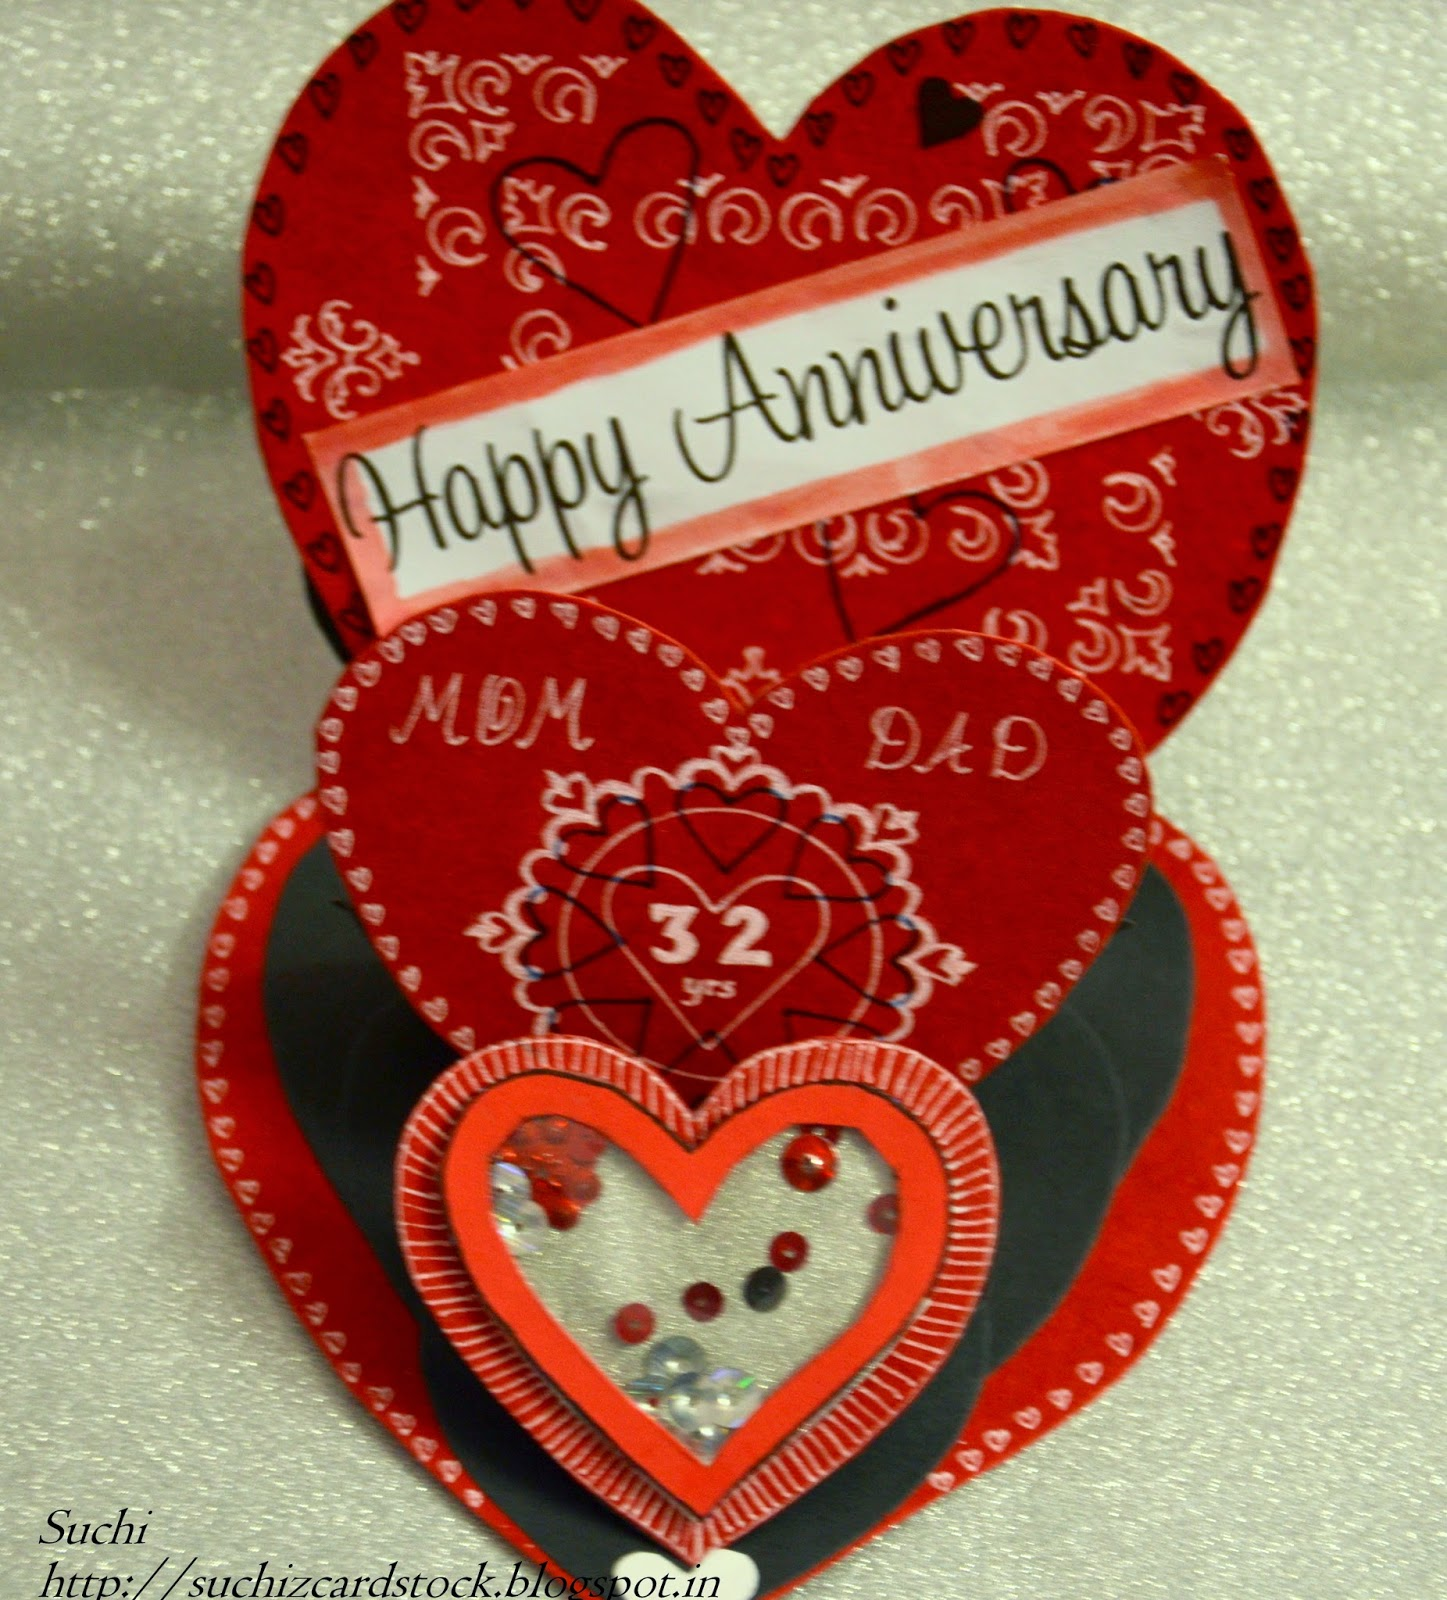 http://suchizcardstock.blogspot.in/2015/02/triple-easel-shaker-anniversary-card.html